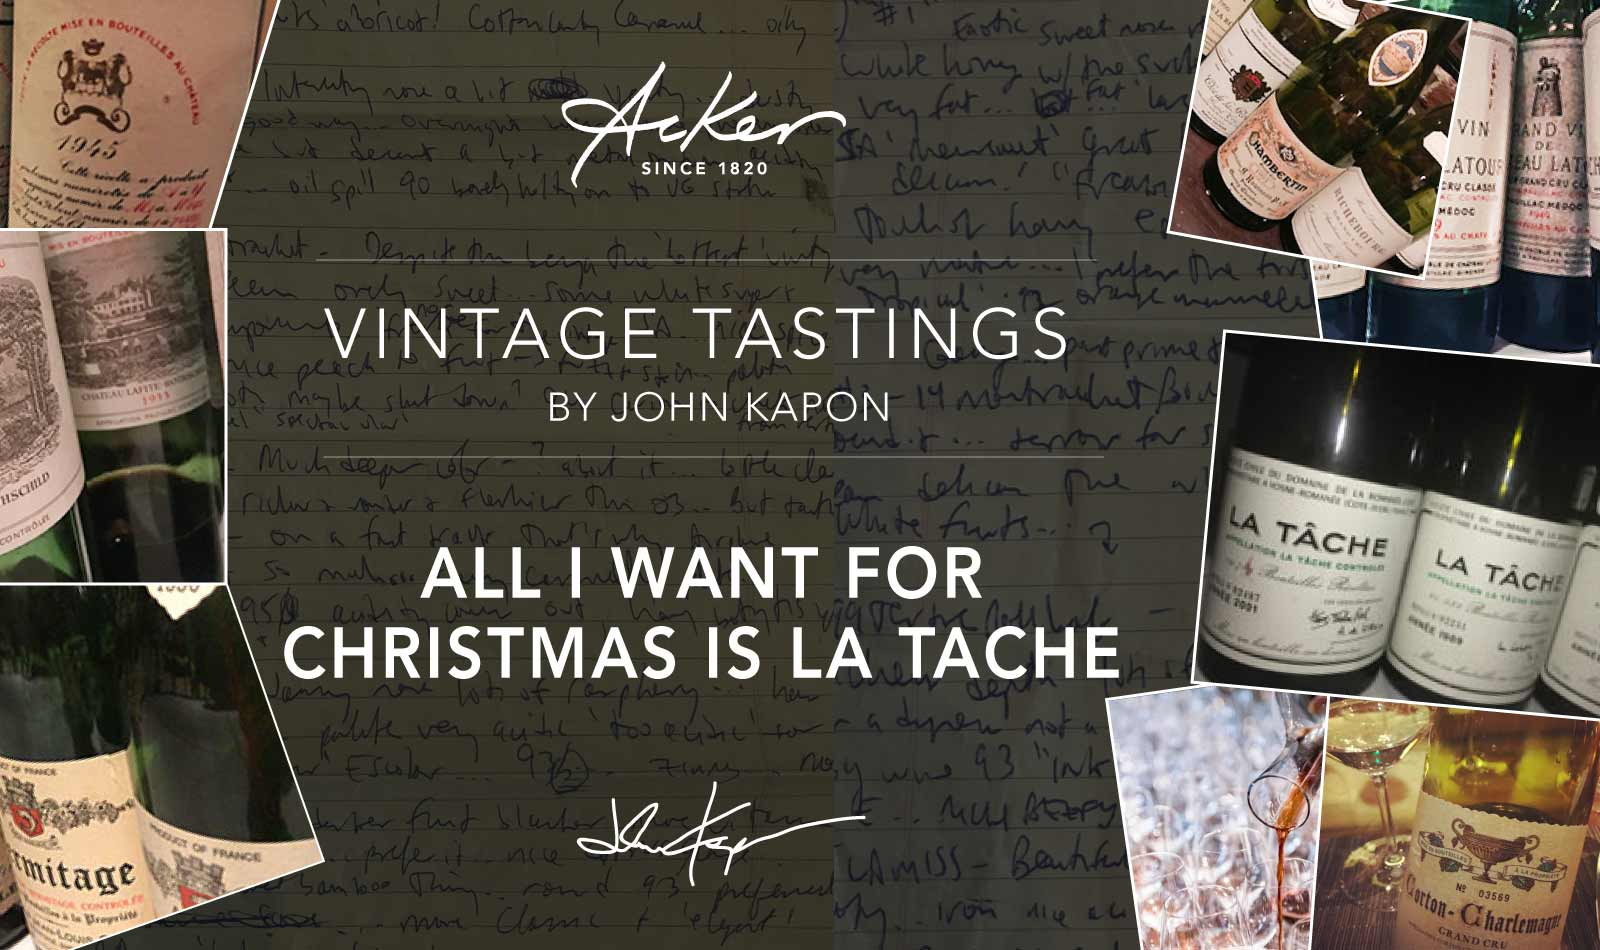 All I Want for Christmas is La Tache